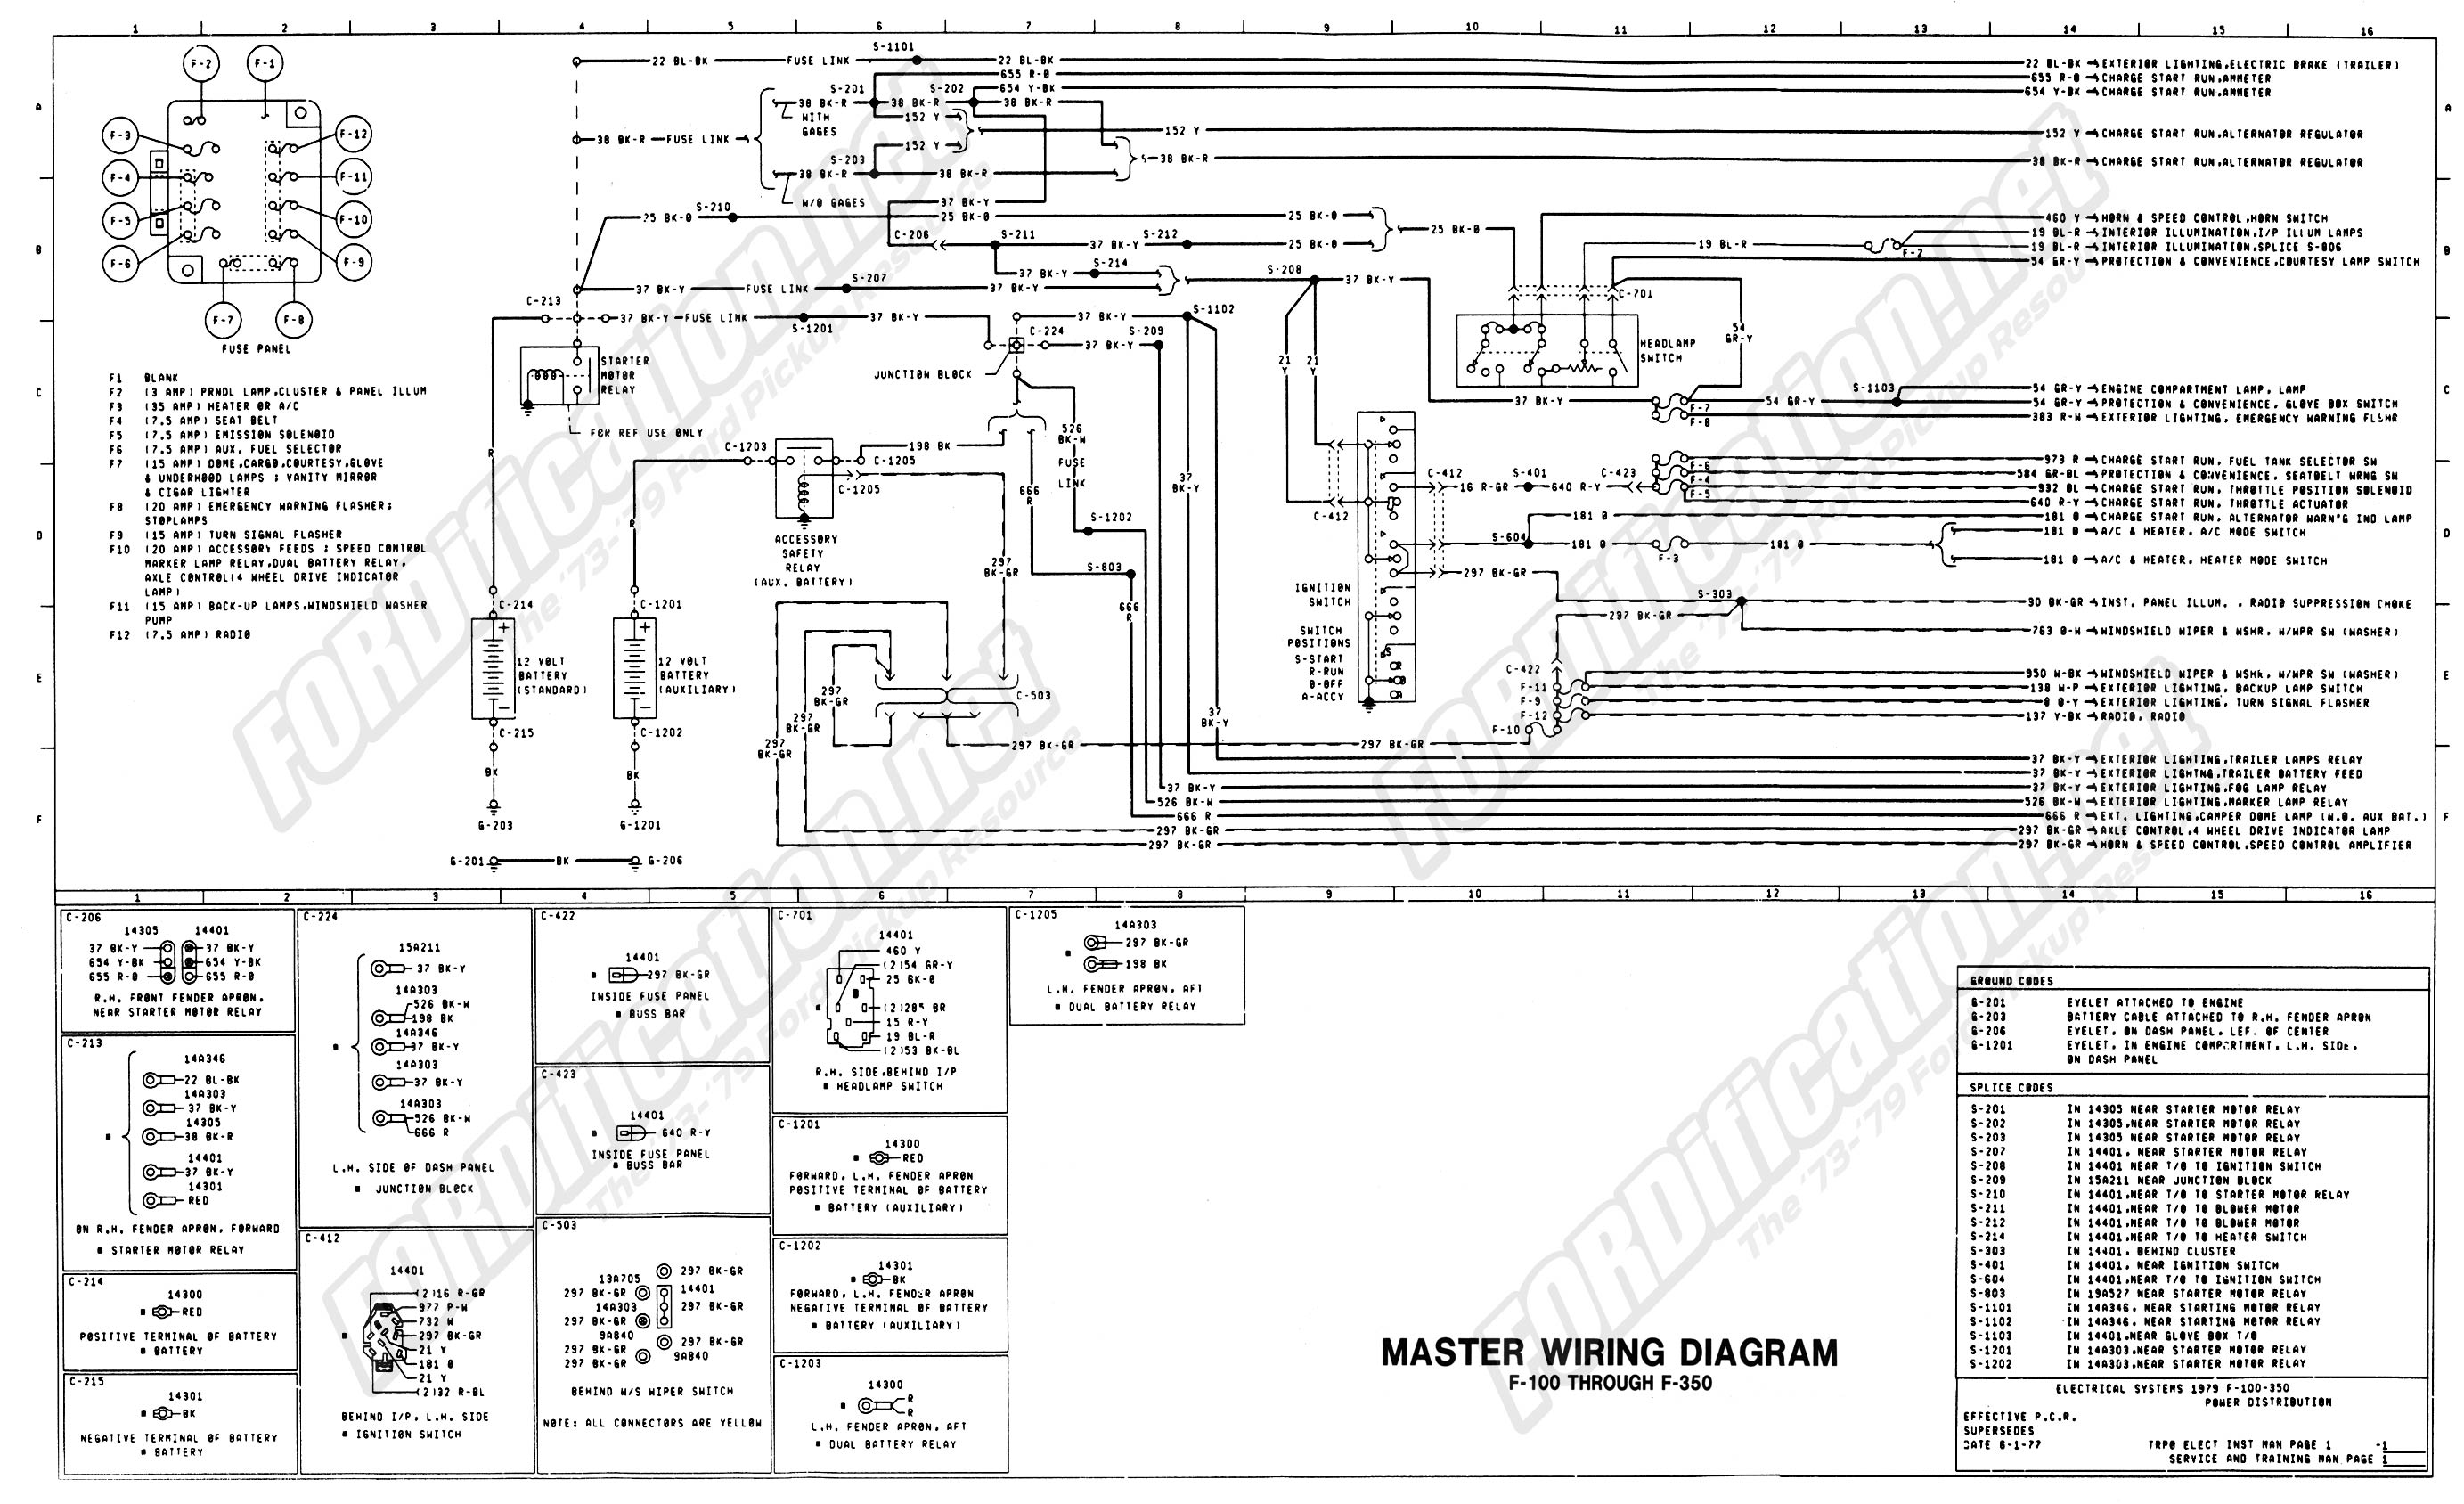 wiring_79master_1of9 1973 1979 ford truck wiring diagrams & schematics fordification net 1979 bronco fuse box diagram at honlapkeszites.co